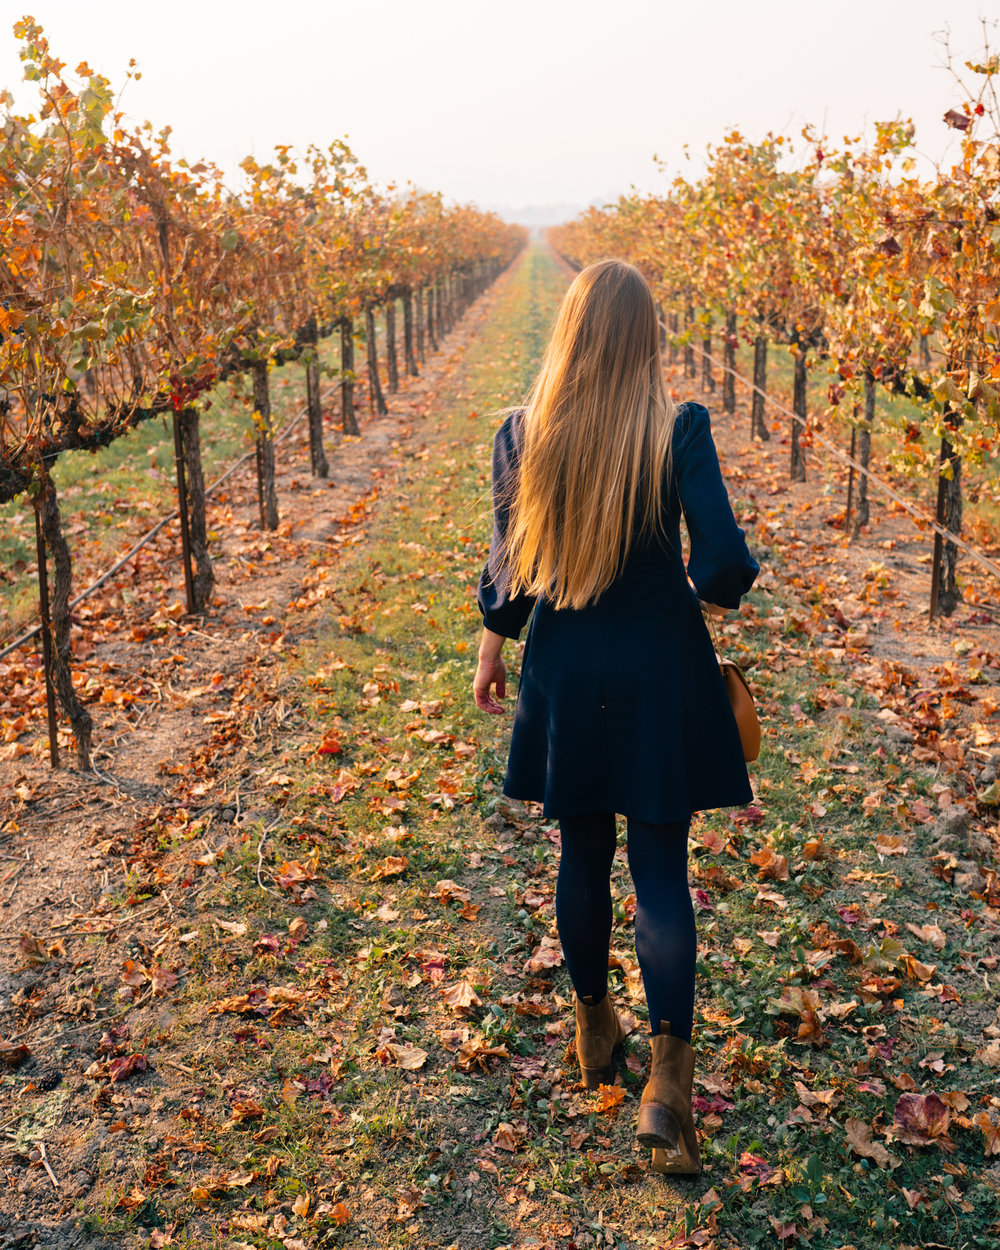 A guide to visiting California vineyards in the fall